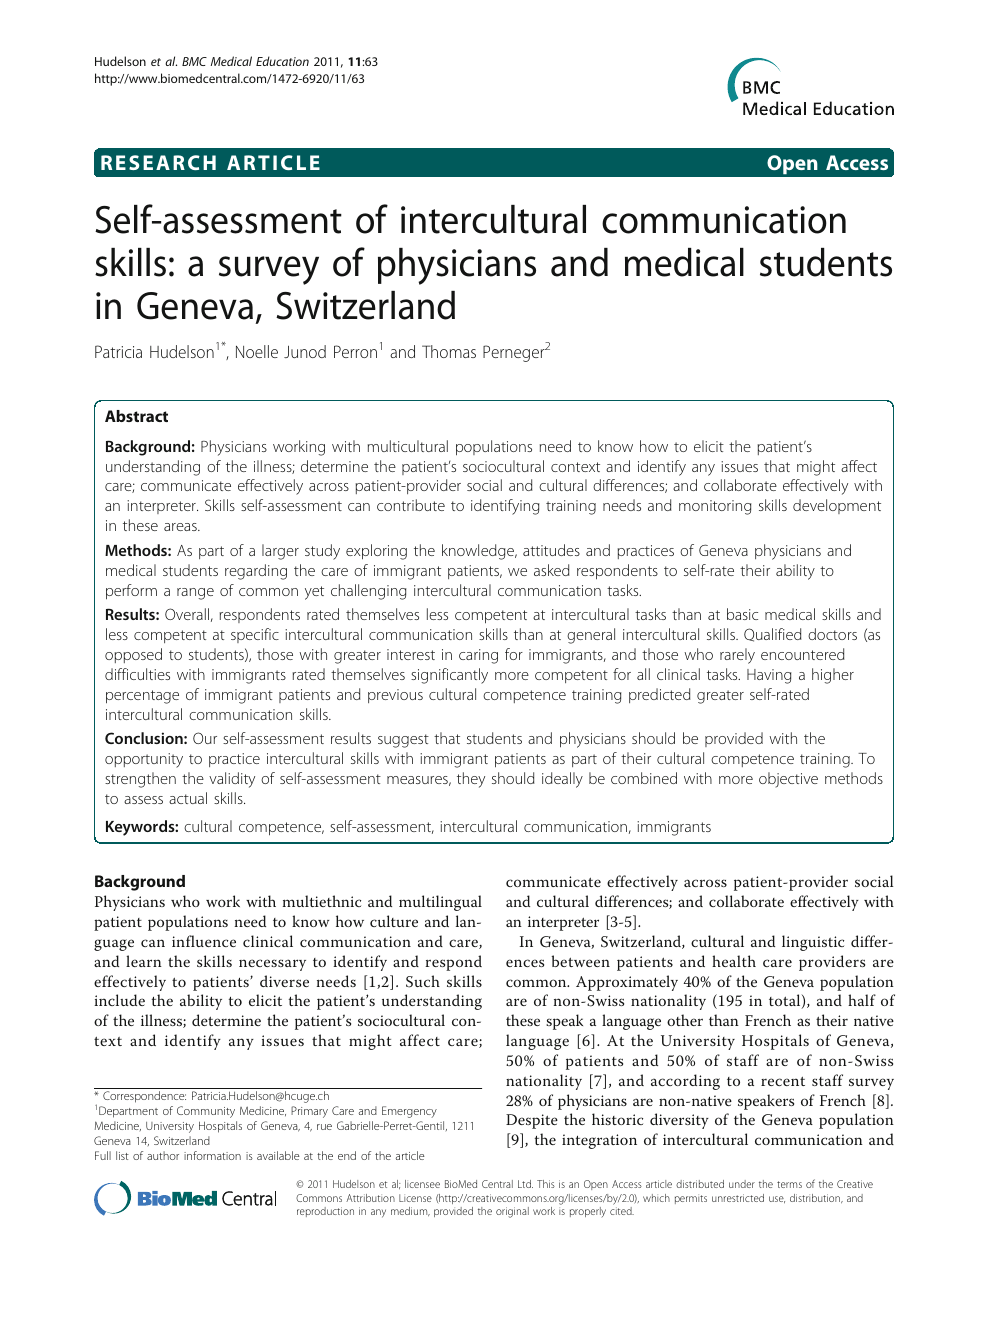 Self-assessment of intercultural communication skills: a